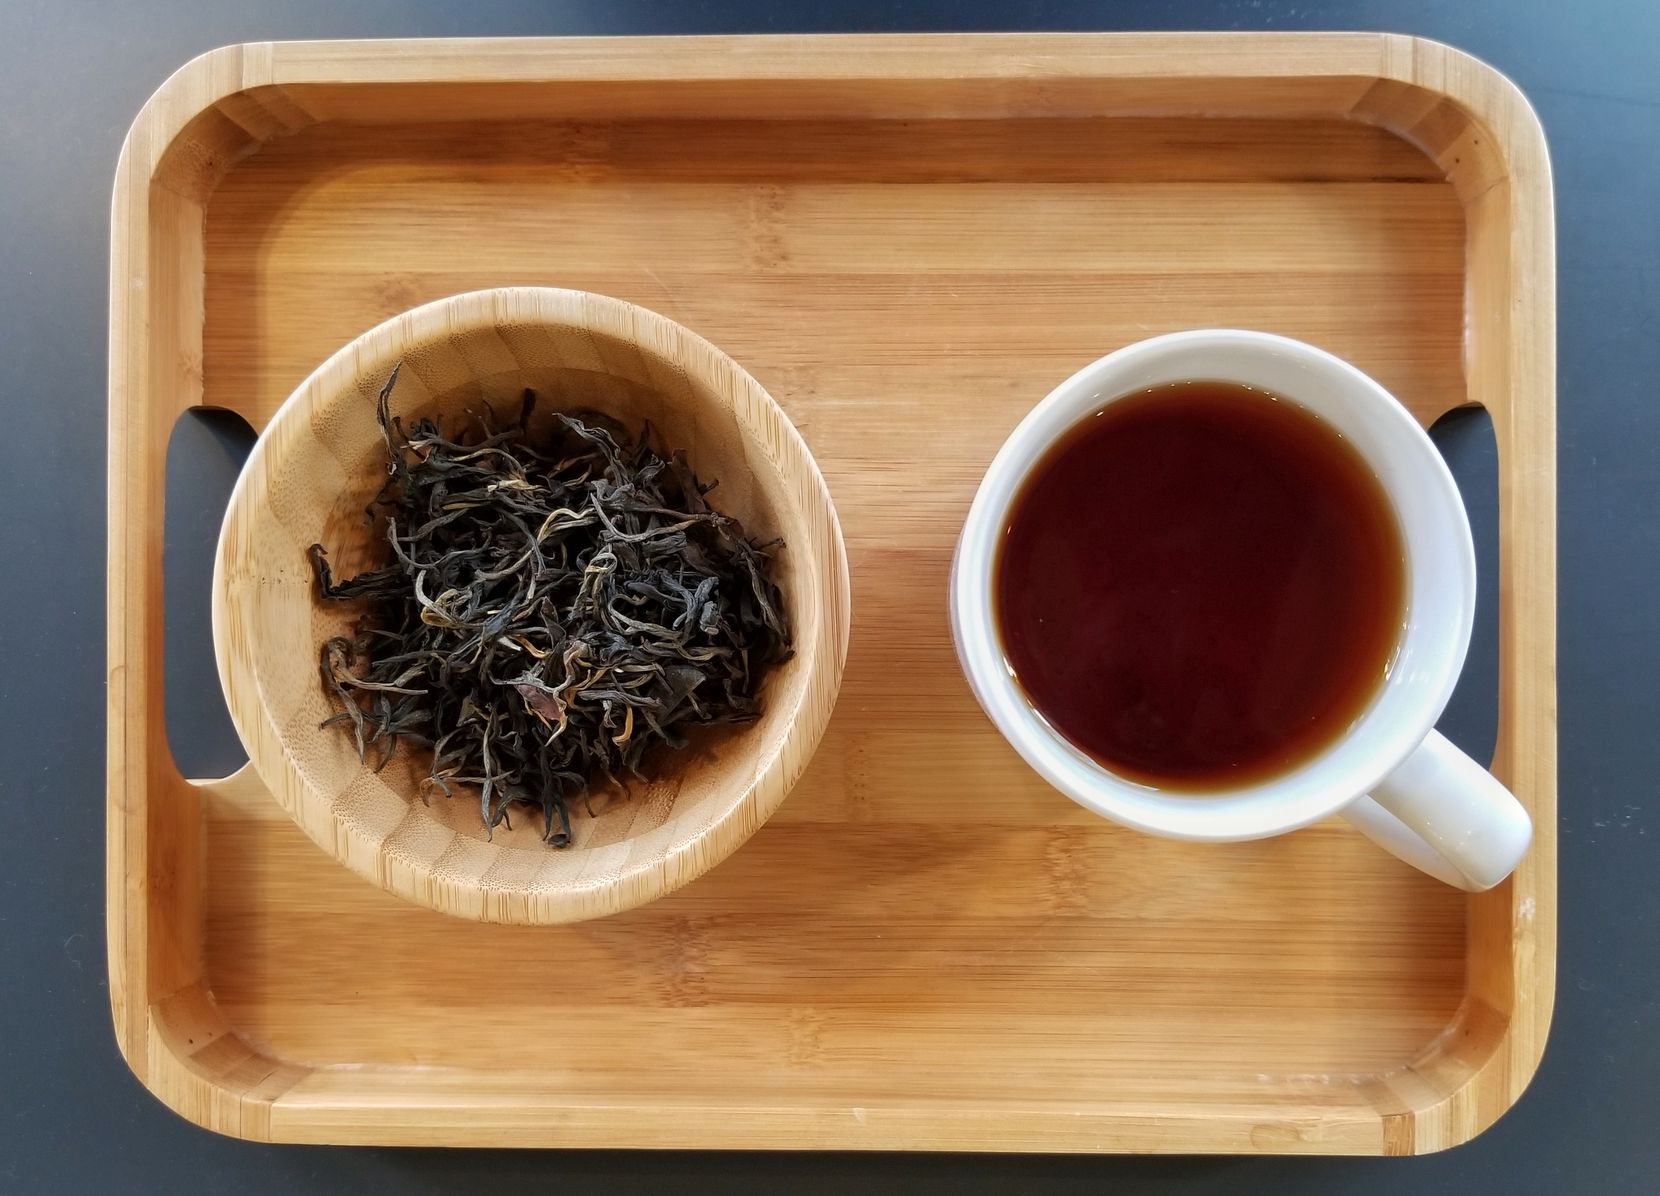 Rakkasan Tea Co. in Dallas has imported rare teas from Myanmar.